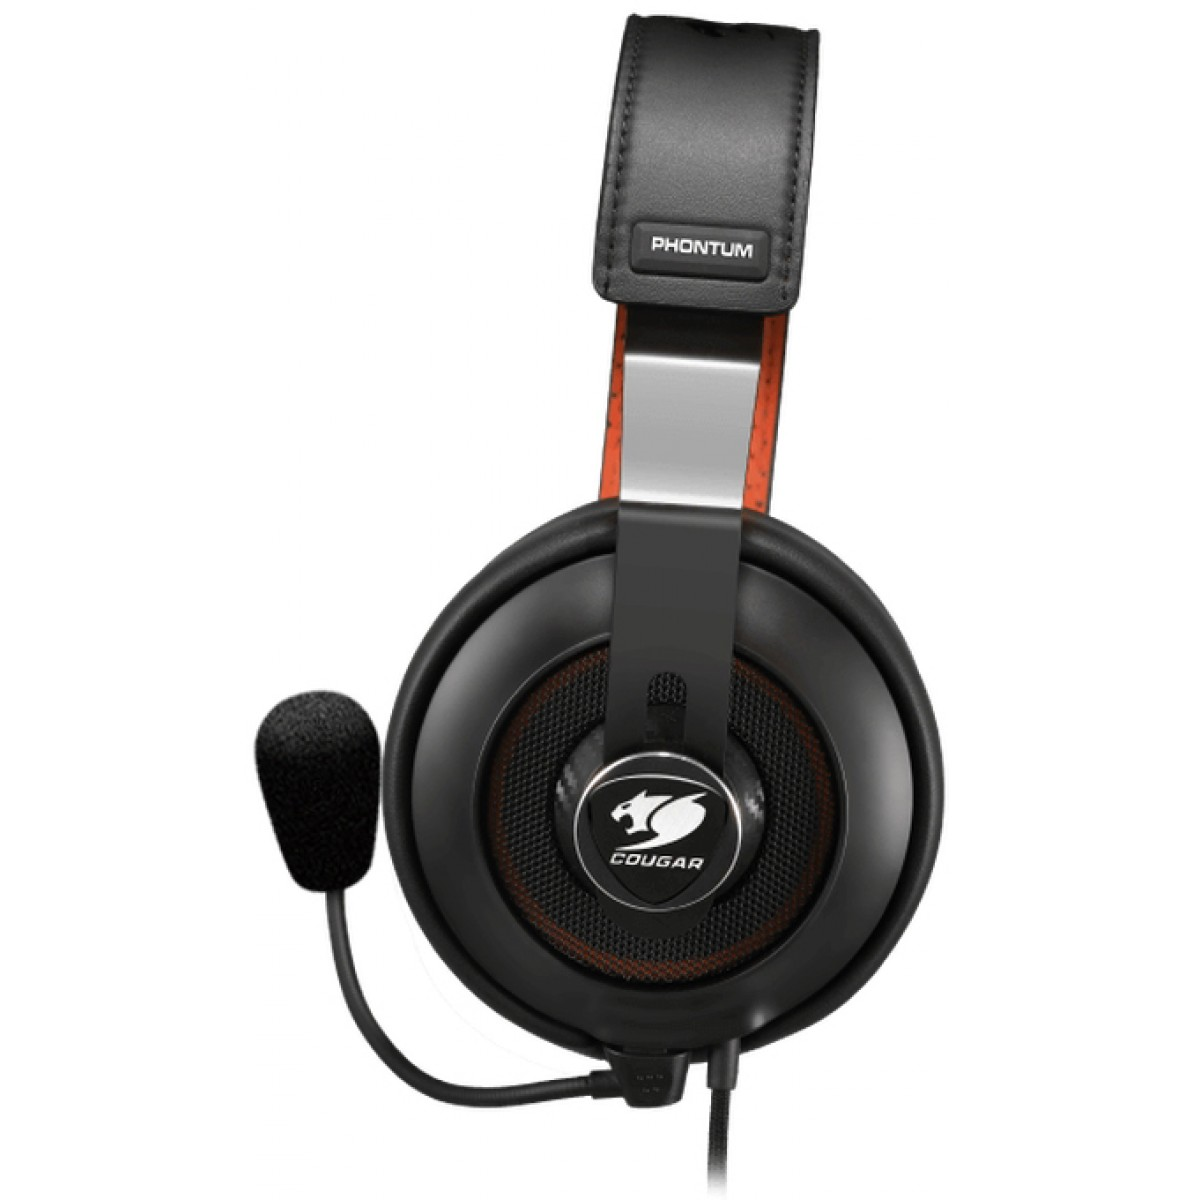 Headset Gamer Cougar Esports Phontum S Black Edition, 3H500P53T.0001